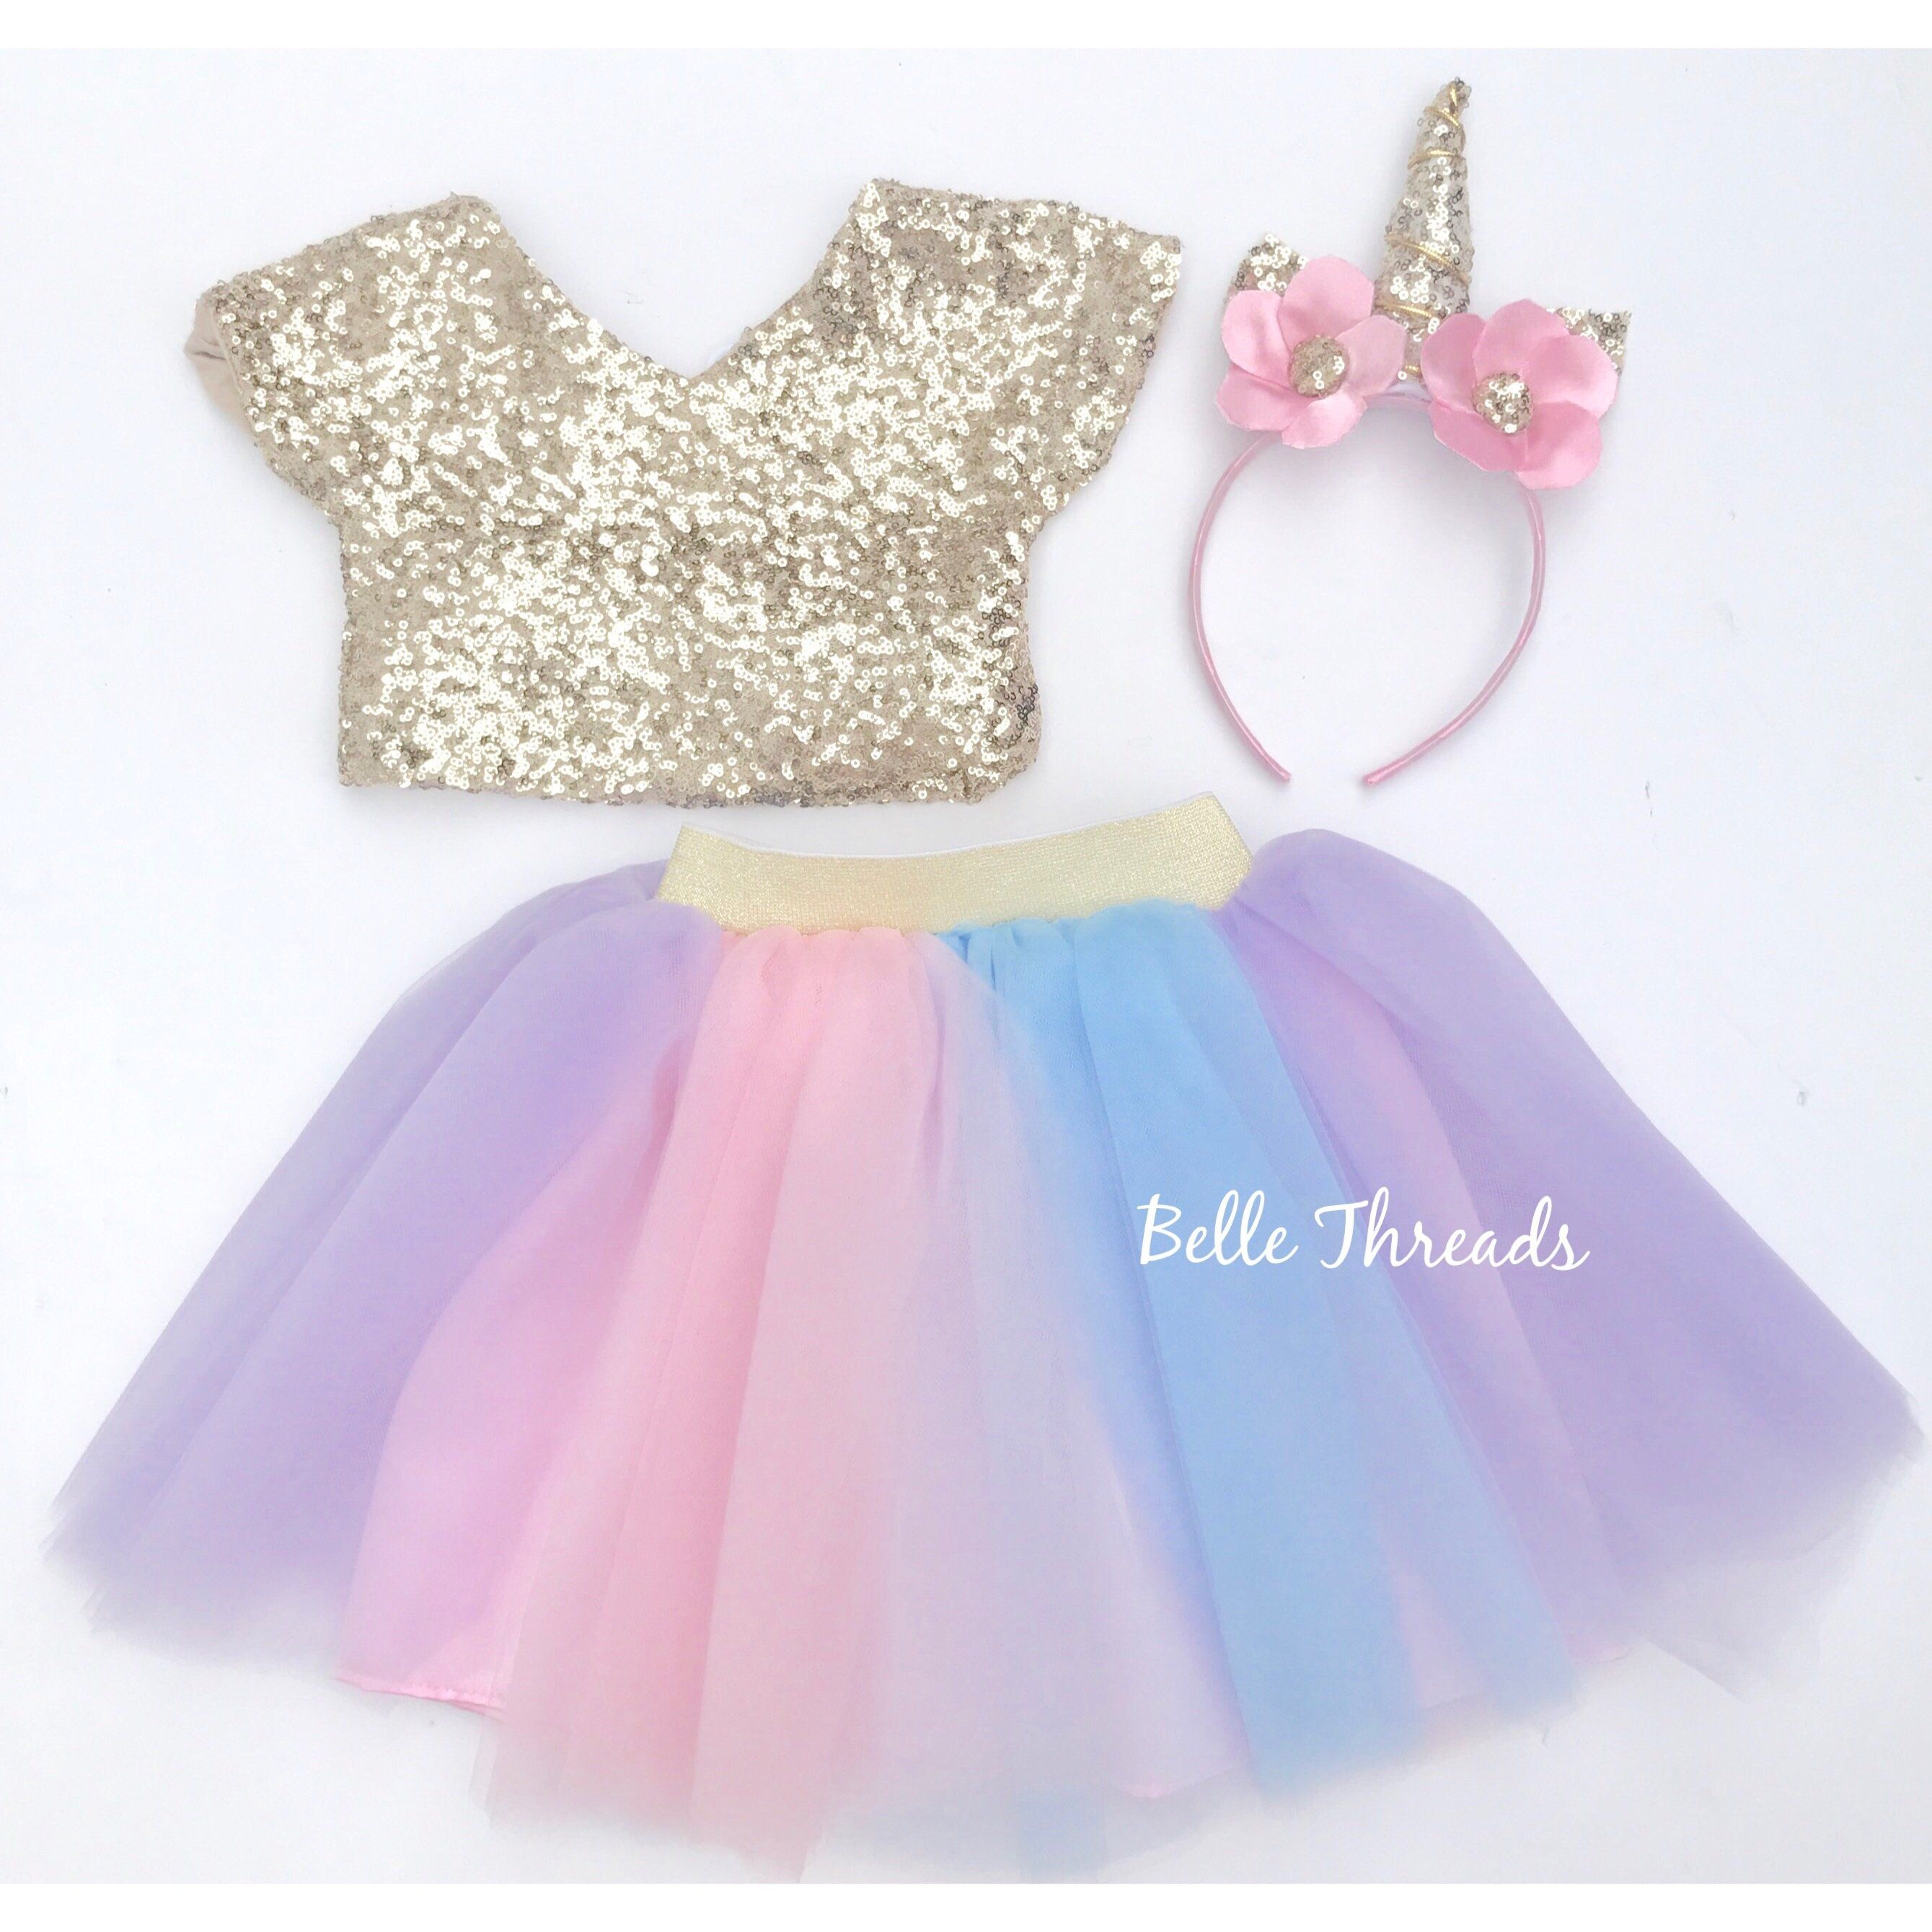 a257b1735d19f Unicorn Tutu Set - Gold Sequin Top & Rainbow Tutu Set - Unicorn Dress –  Belle